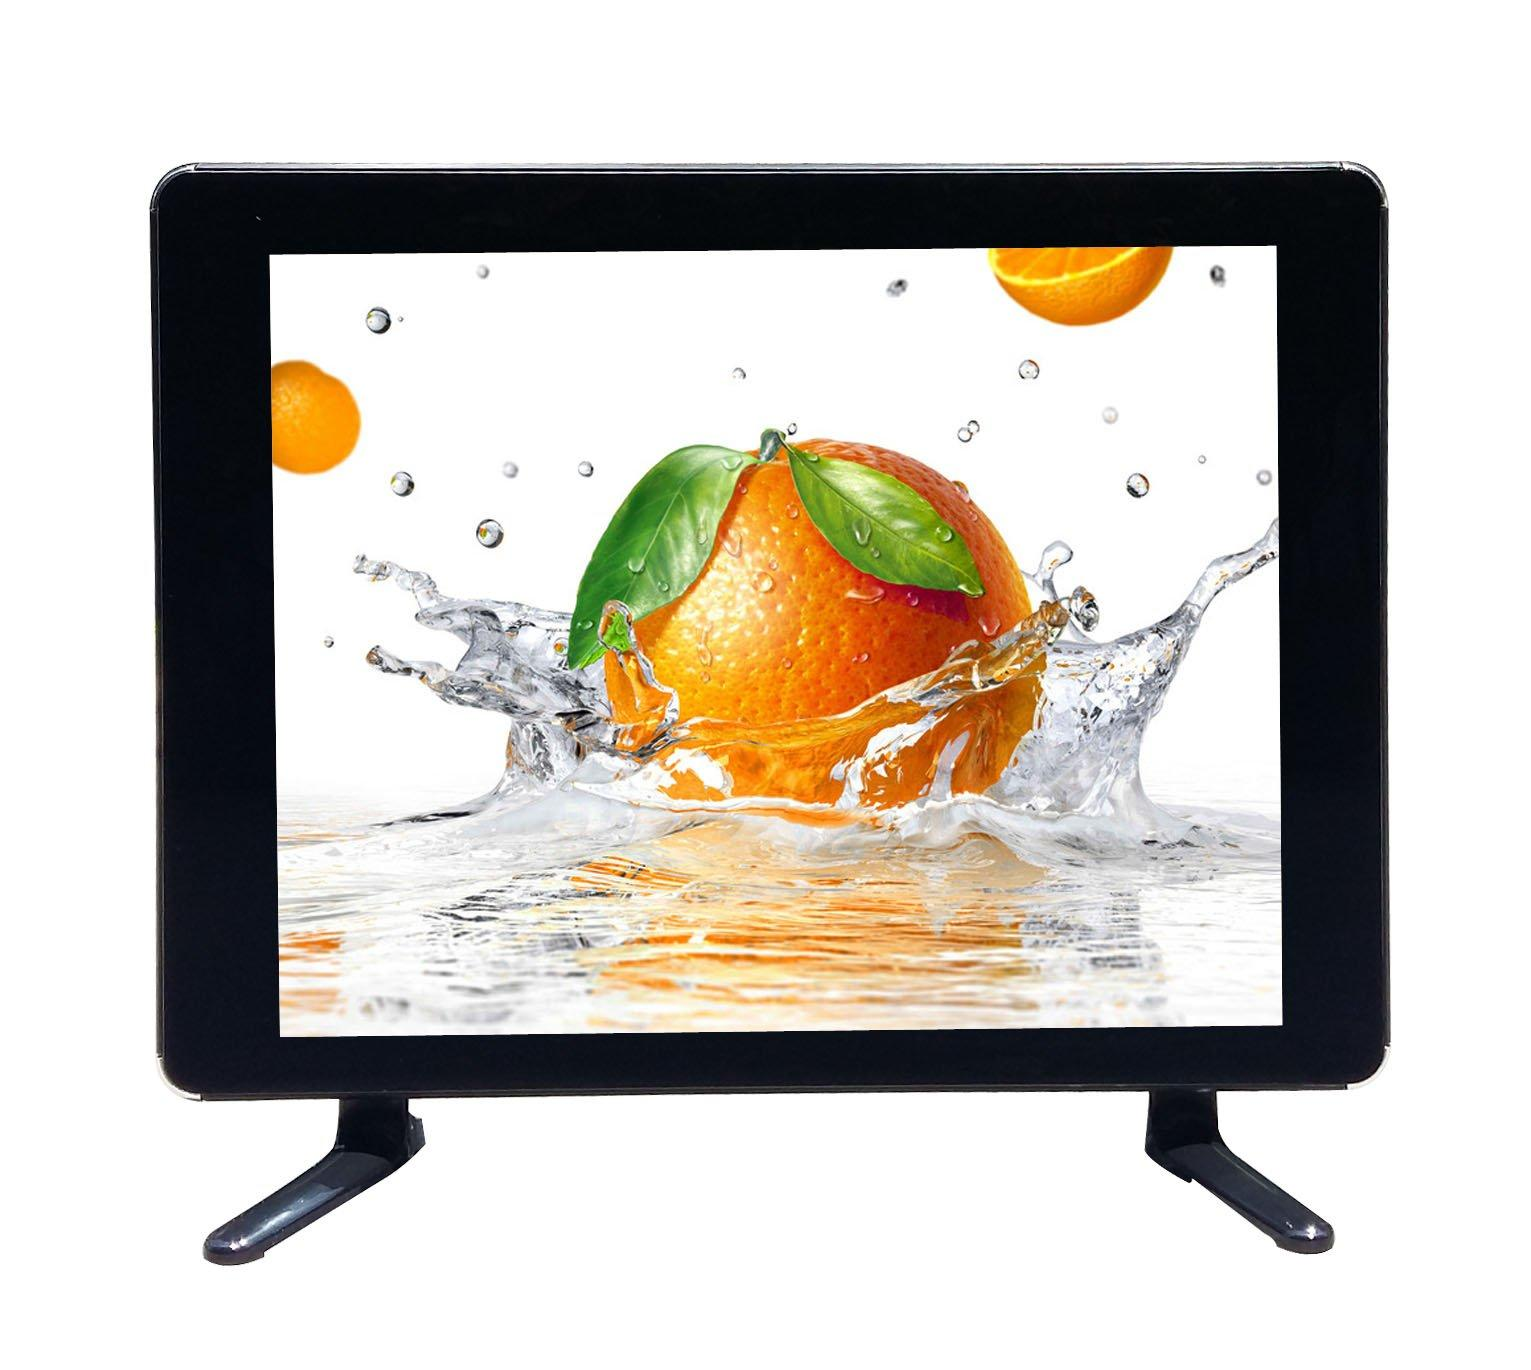 Xinyao LCD 17 inch tv for sale new style for lcd screen-1